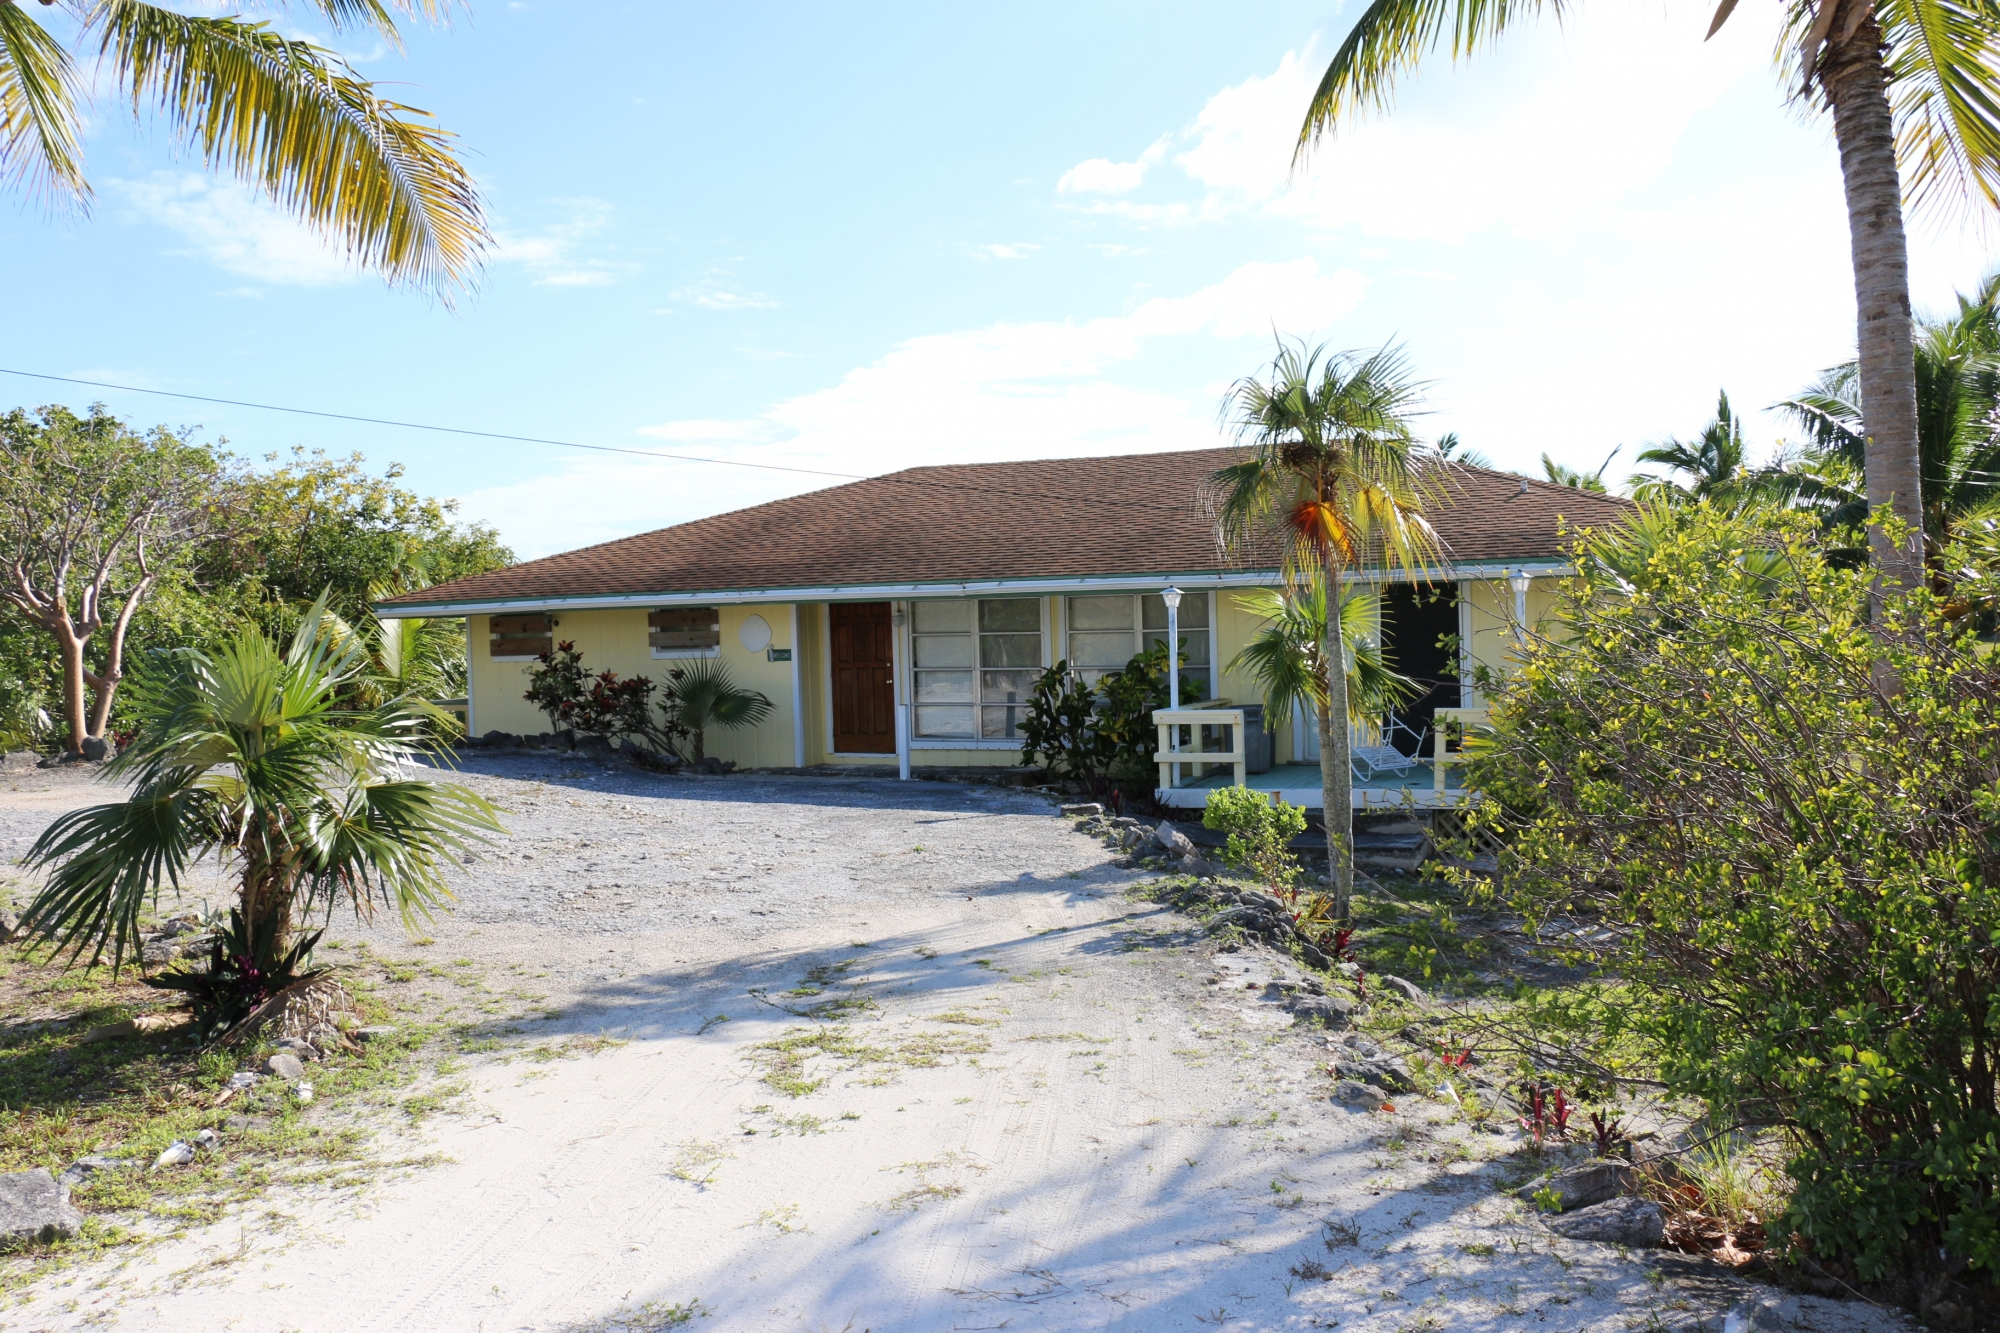 Bahamas Real Estate : Berry islands real estate homes for sale and rentals in